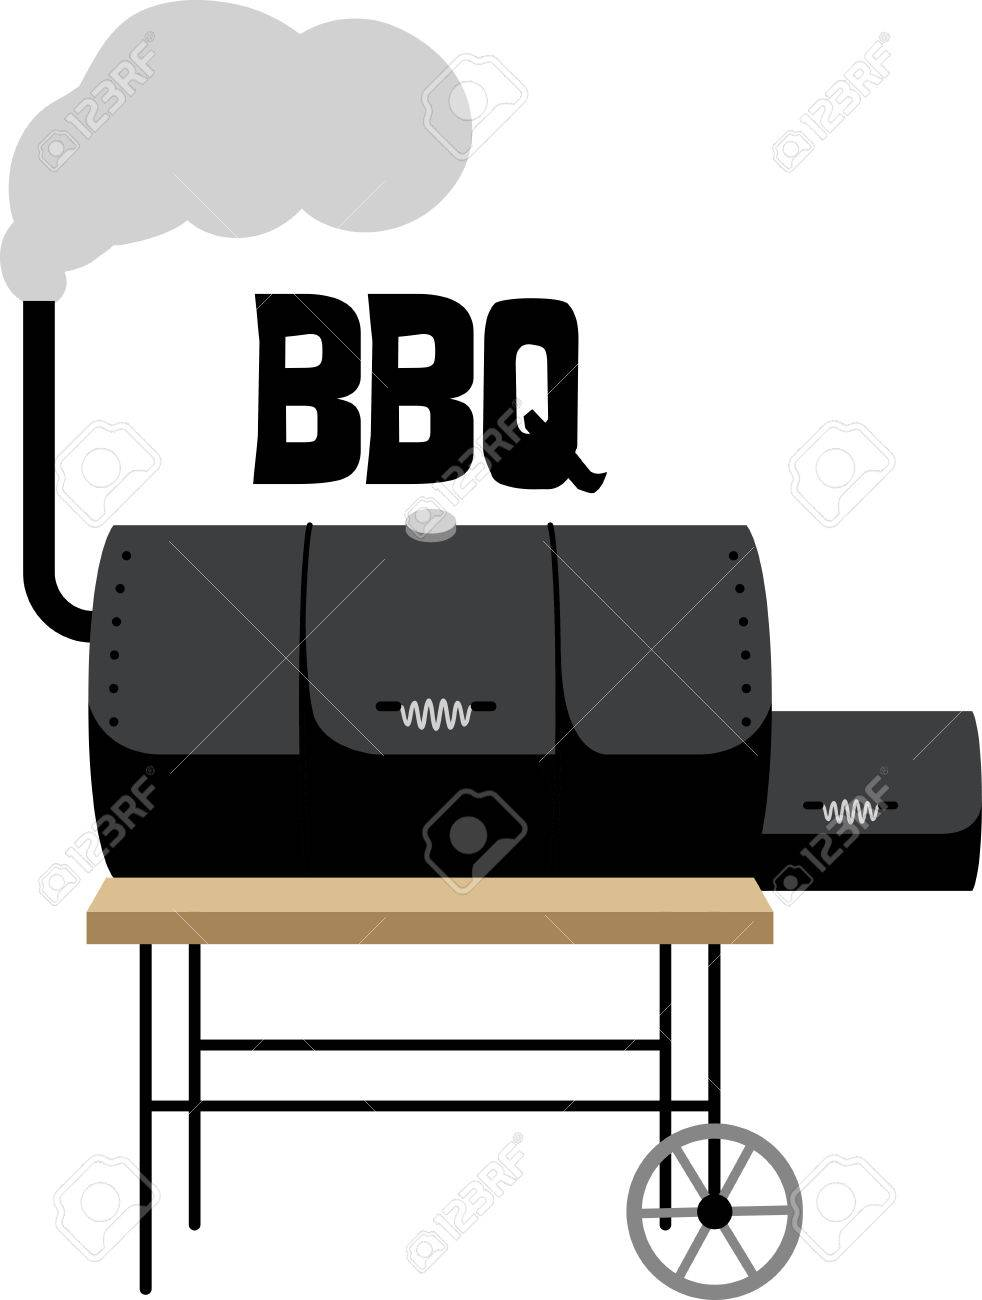 Have a great cookout with a smoker on a griller's apron..